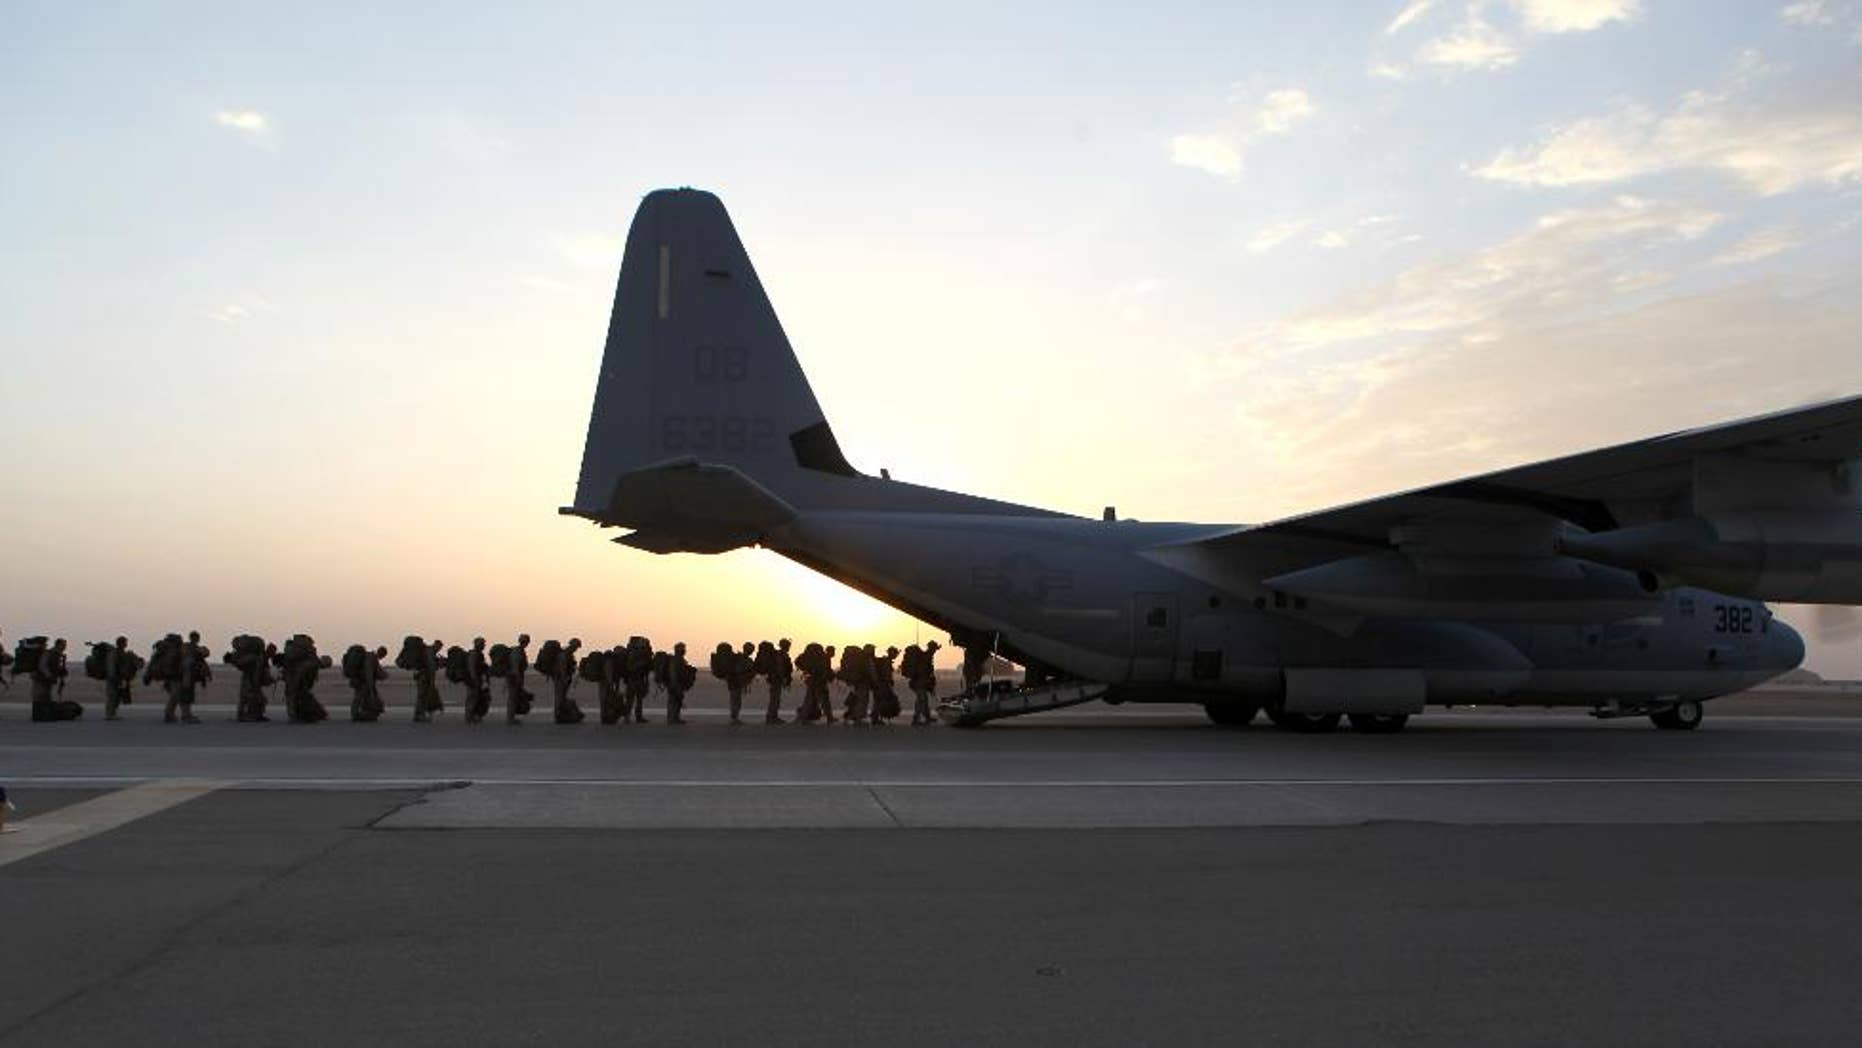 This handout photo provided Defense Department shows Marines and sailors with Marine Expeditionary Brigade – Afghanistan load onto a KC-130 aircraft on the Camp Bastion, Afghanistan flightline, Monday, Oct. 27, 2014. The handover of the U.S. Marines' main base to Afghan control in the hardscrabble Helmand province is more than a signal that America's longest war is ending. It is a reminder of the enormous loss and sacrifice by Marines who swept in as part of President Barack Obama's surge of forces against a resurgent Taliban in 2009.  (AP Photo/Staff Sgt. John Jackson, Defense Department, US Marines)